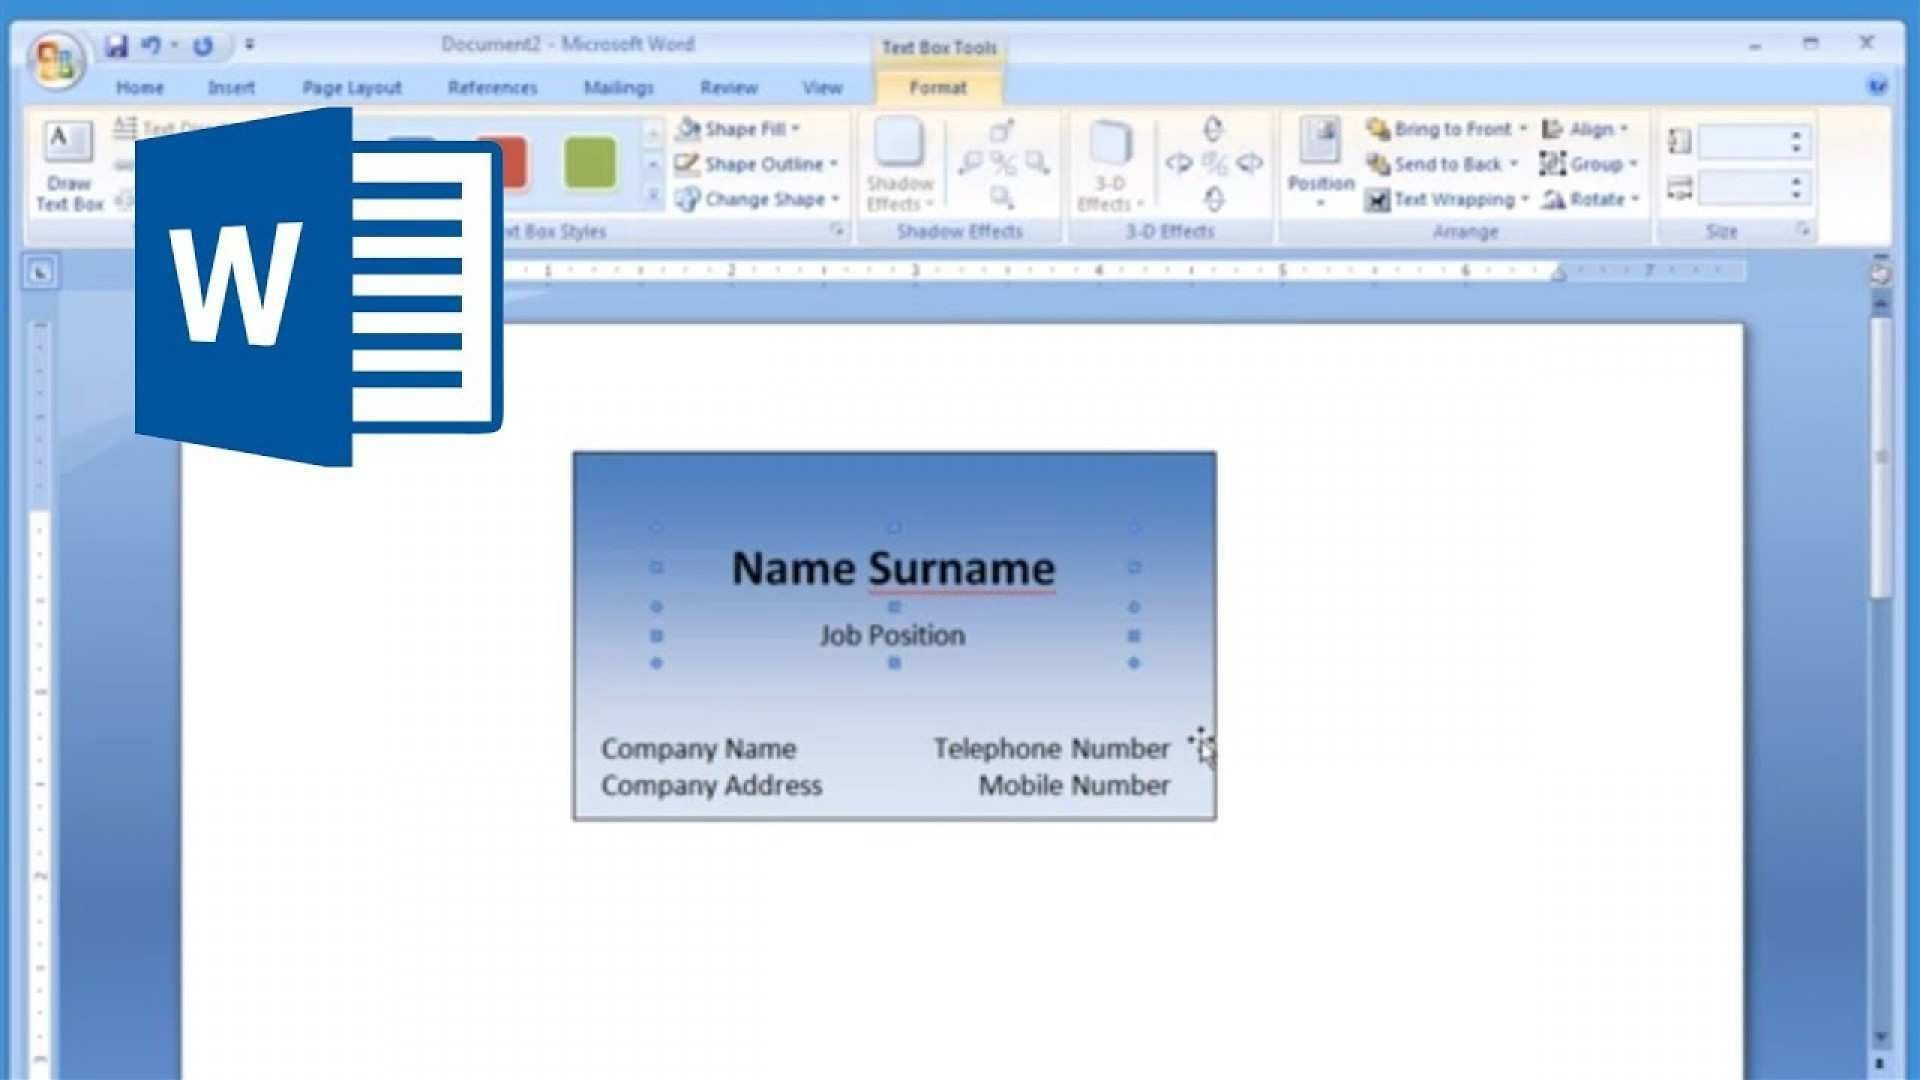 002 Incredible Busines Card Template Microsoft Word Highest Quality  Avery 8 Per Page How To Make A Layout On1920